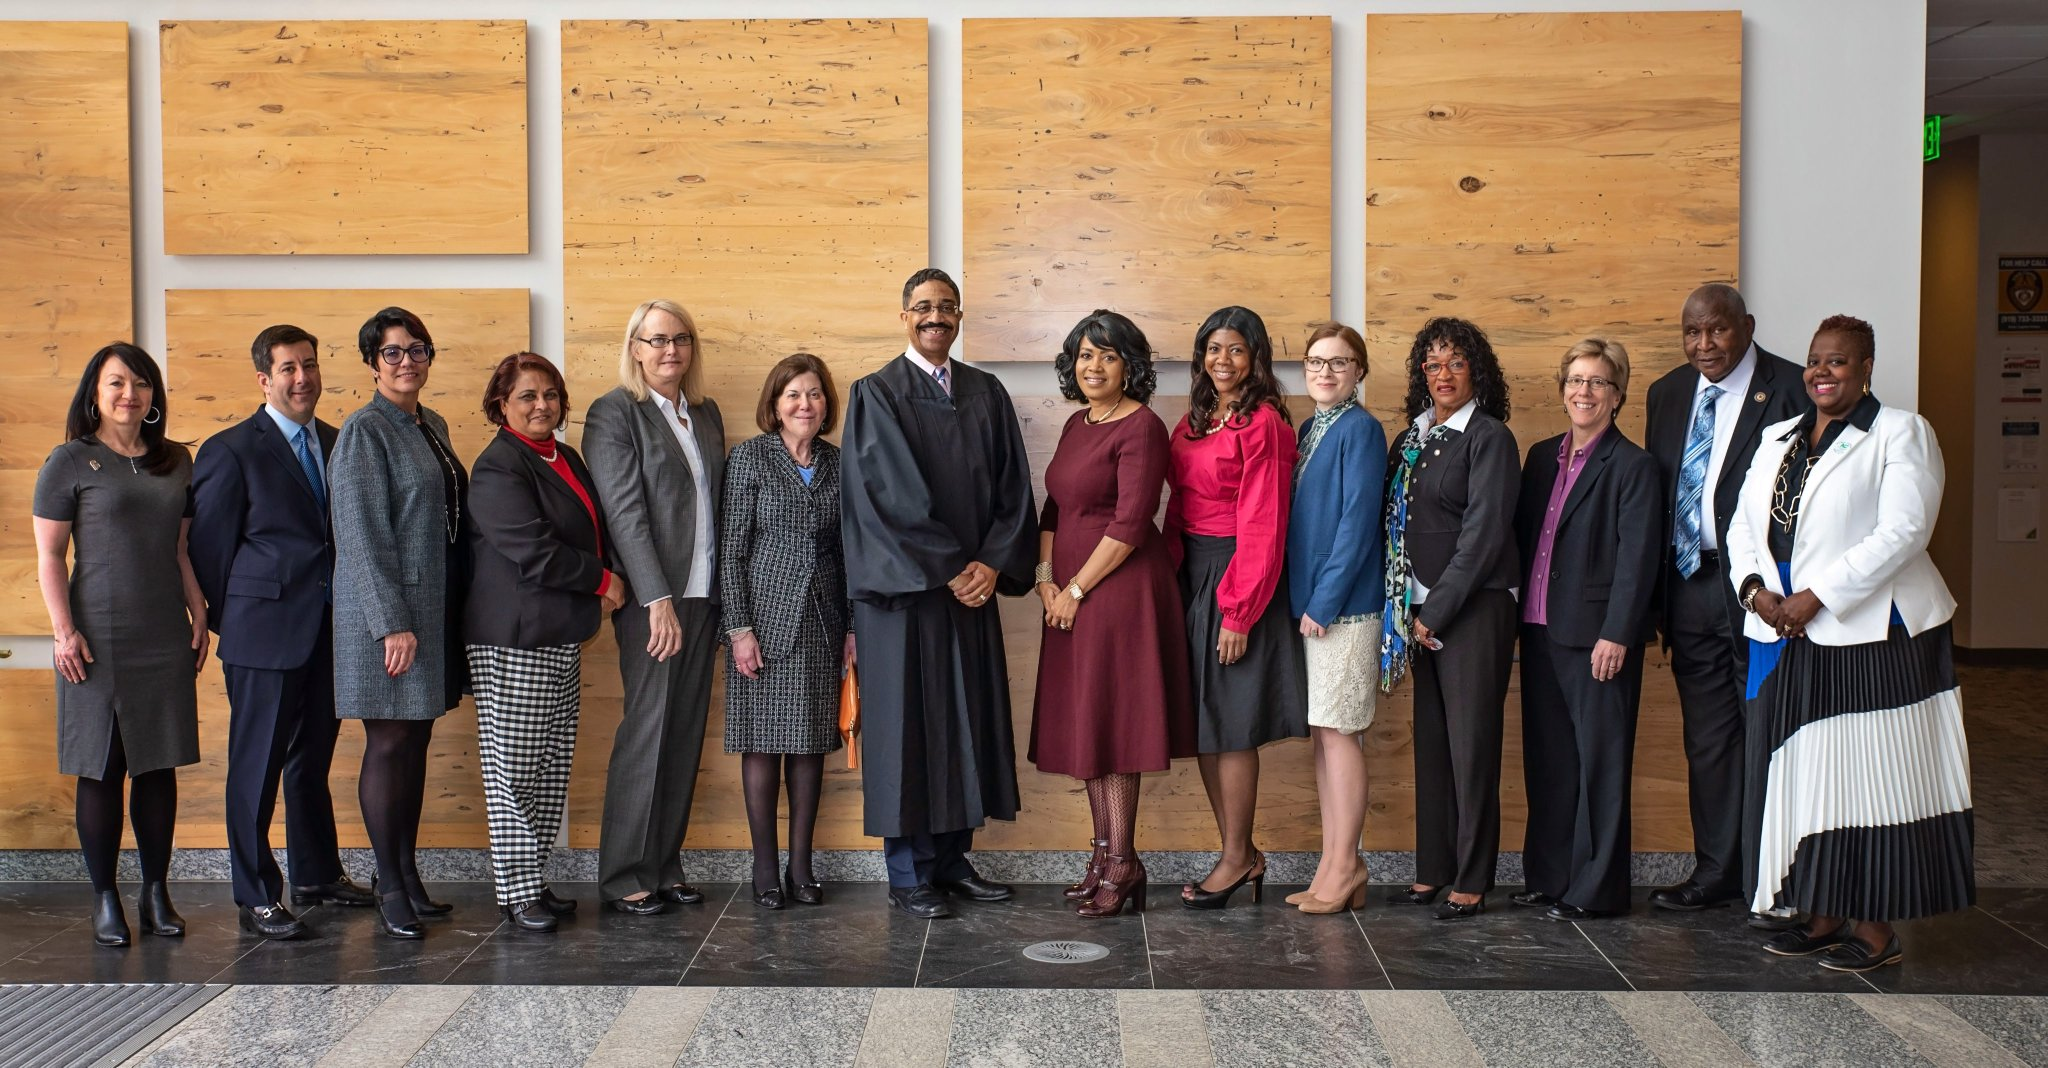 Dean Rimer (sixth from left) stands with other members of the Commission on Inclusion.